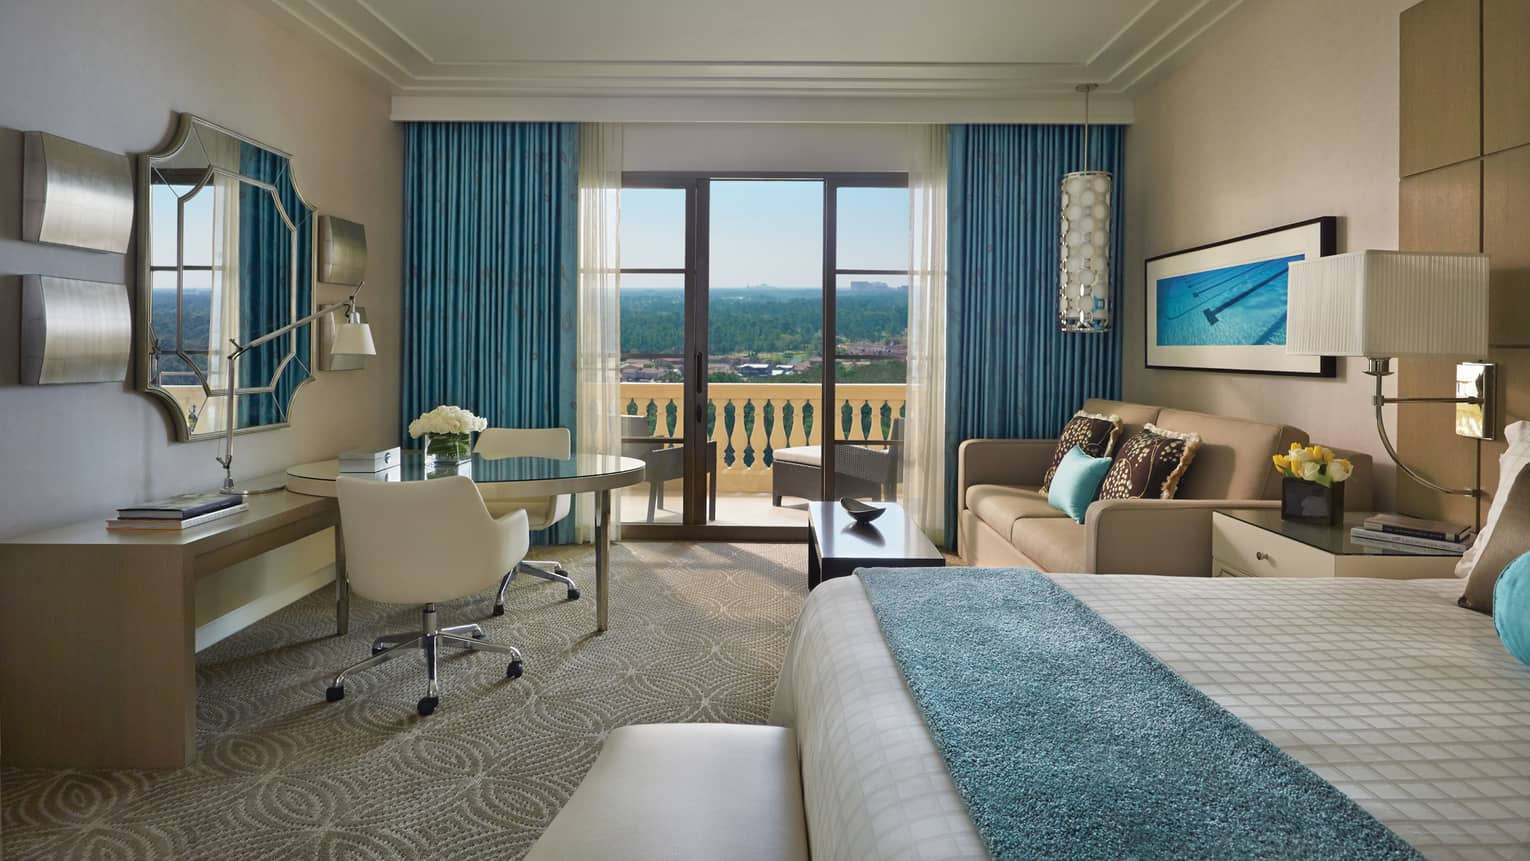 Golden Oak View Room bed with blue blanket, white chair at desk, sofa by balcony doors